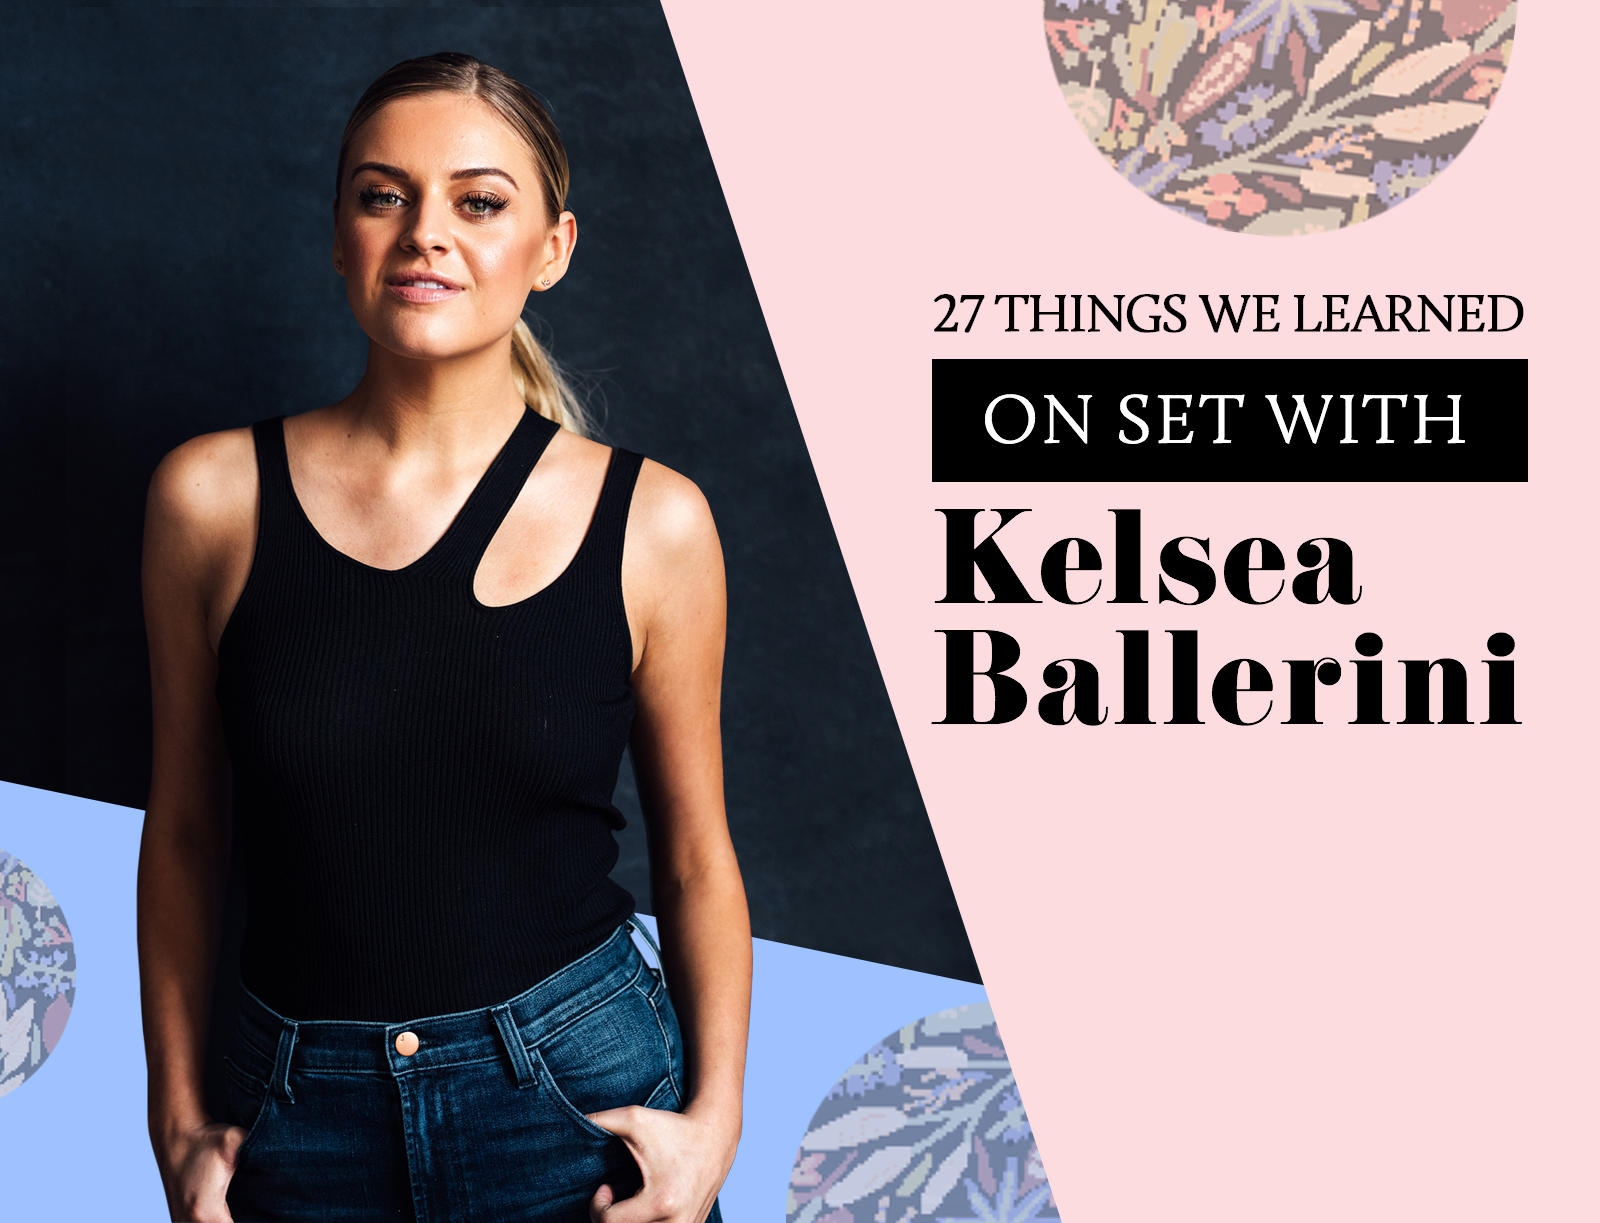 27 Things We Learned On Set With Kelsea Ballerini Second.png